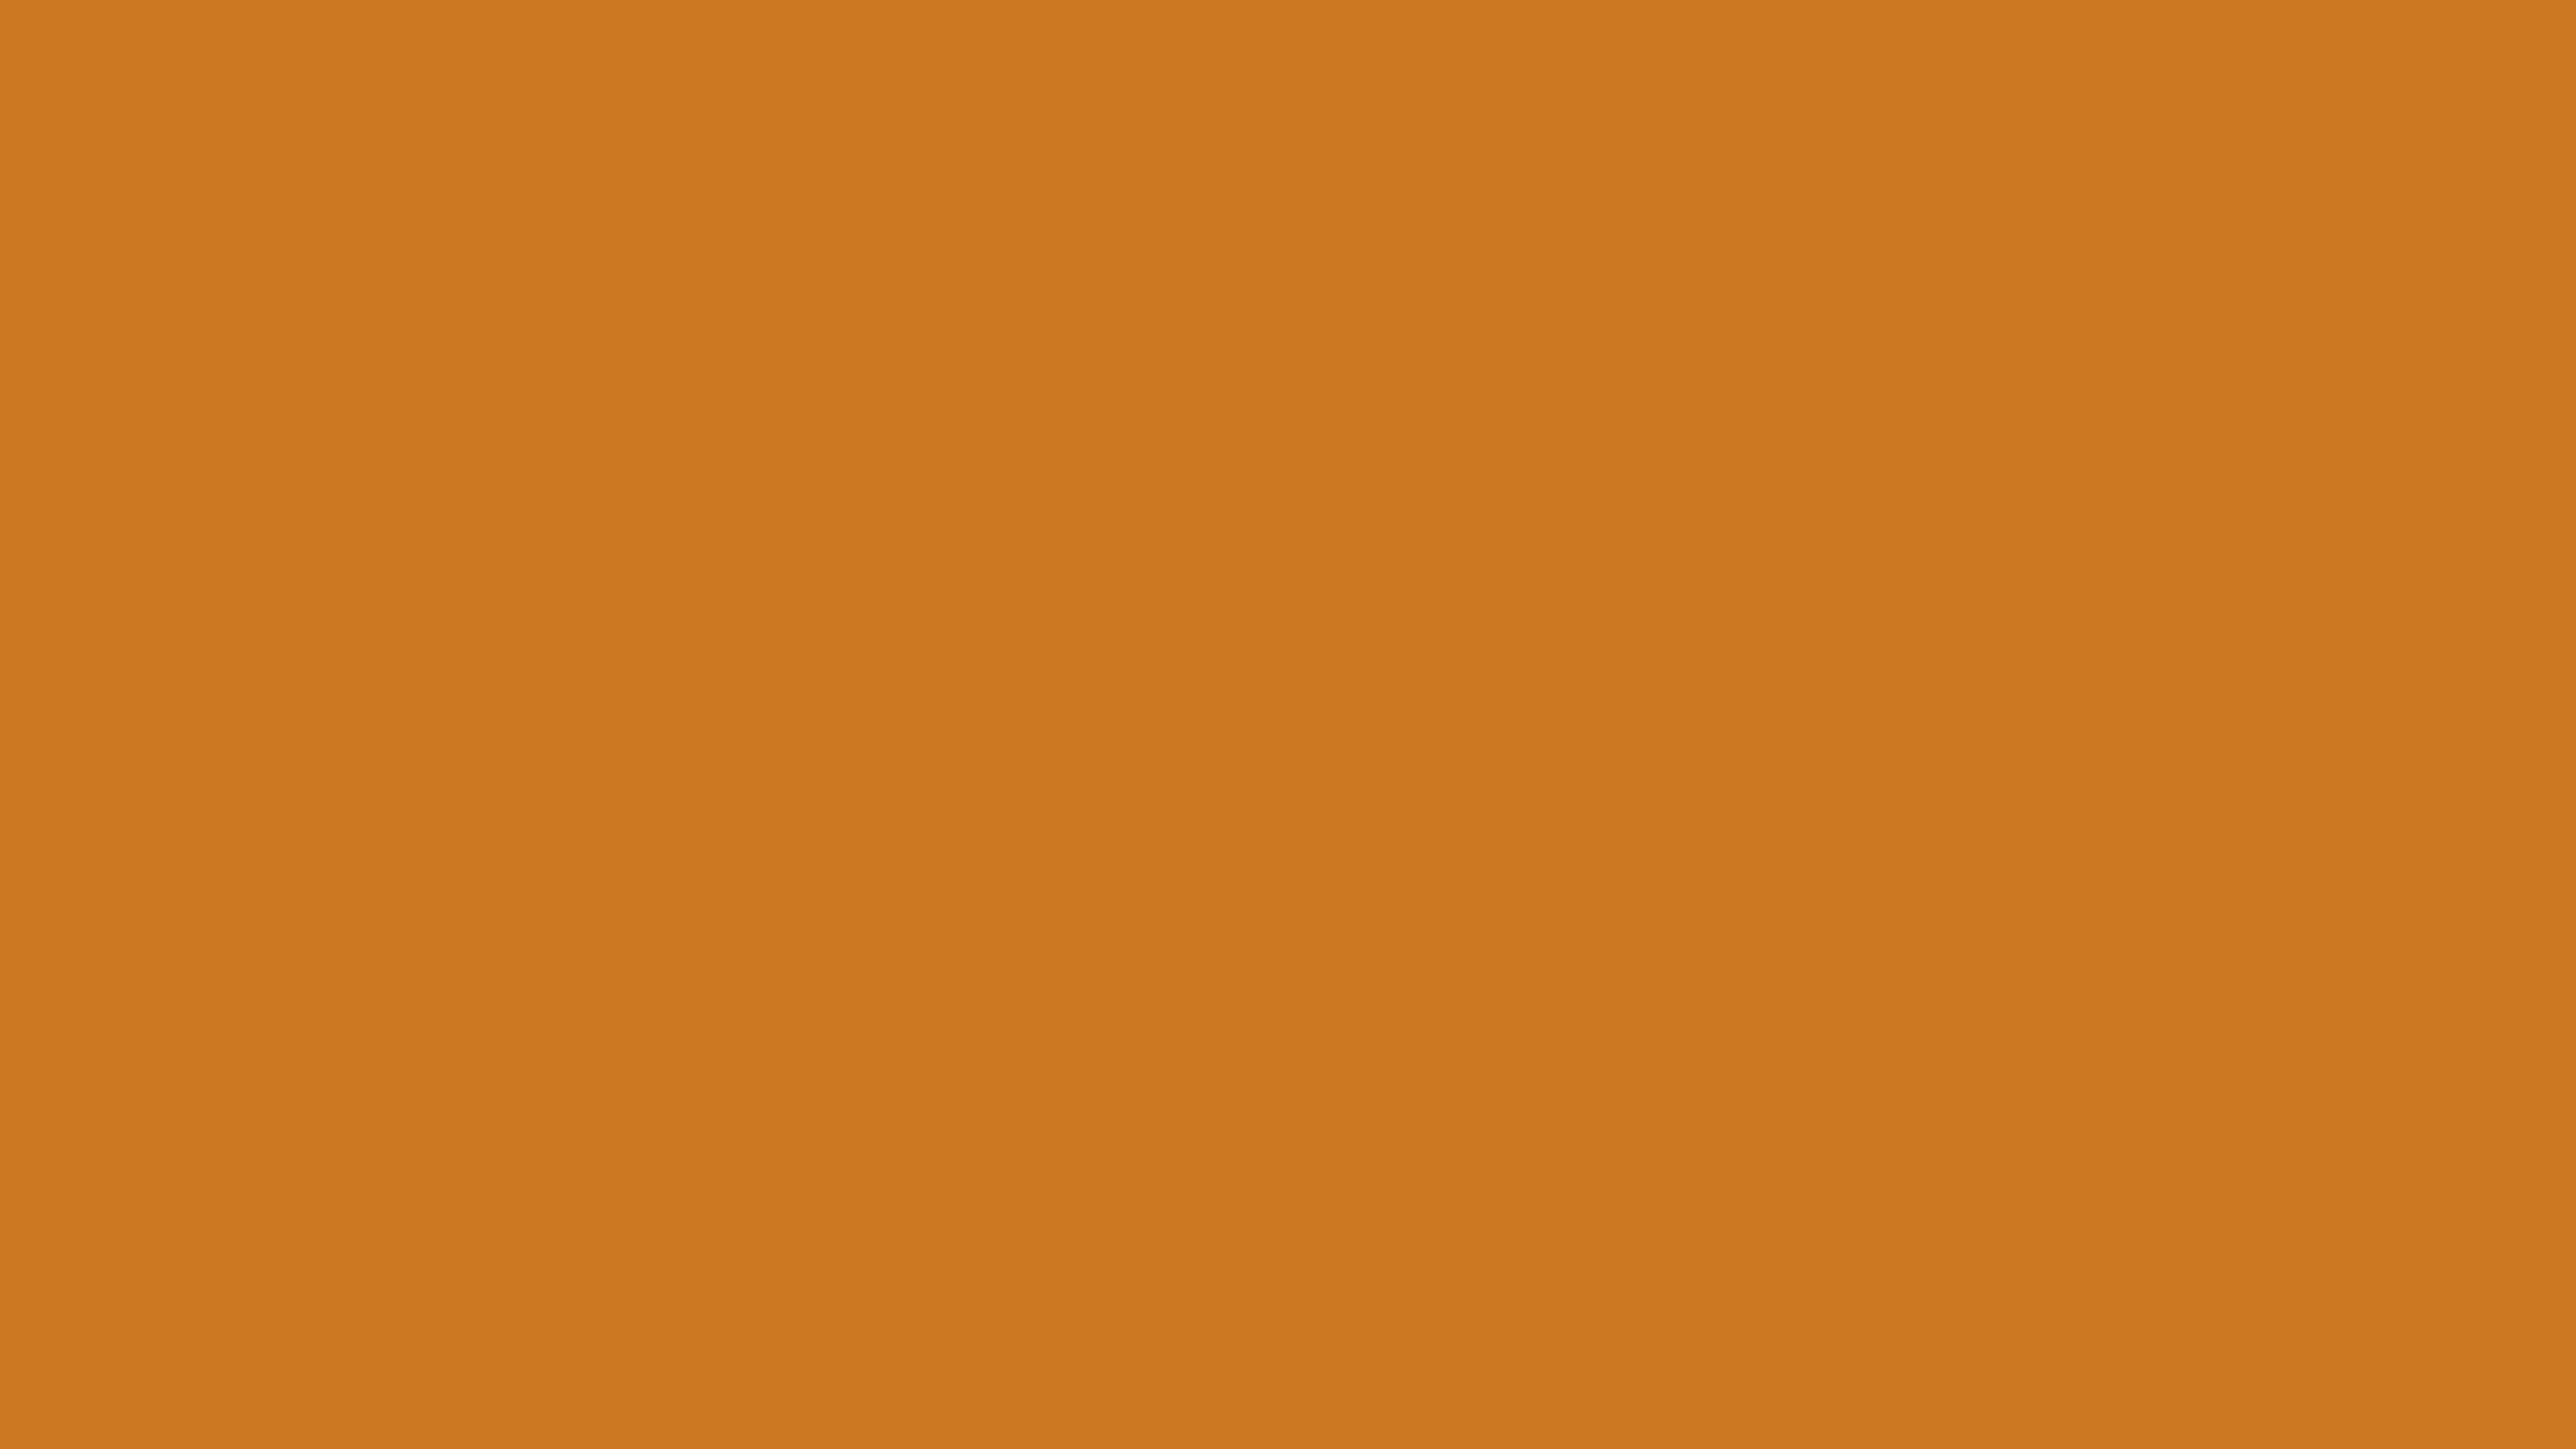 3840x2160 Ochre Solid Color Background